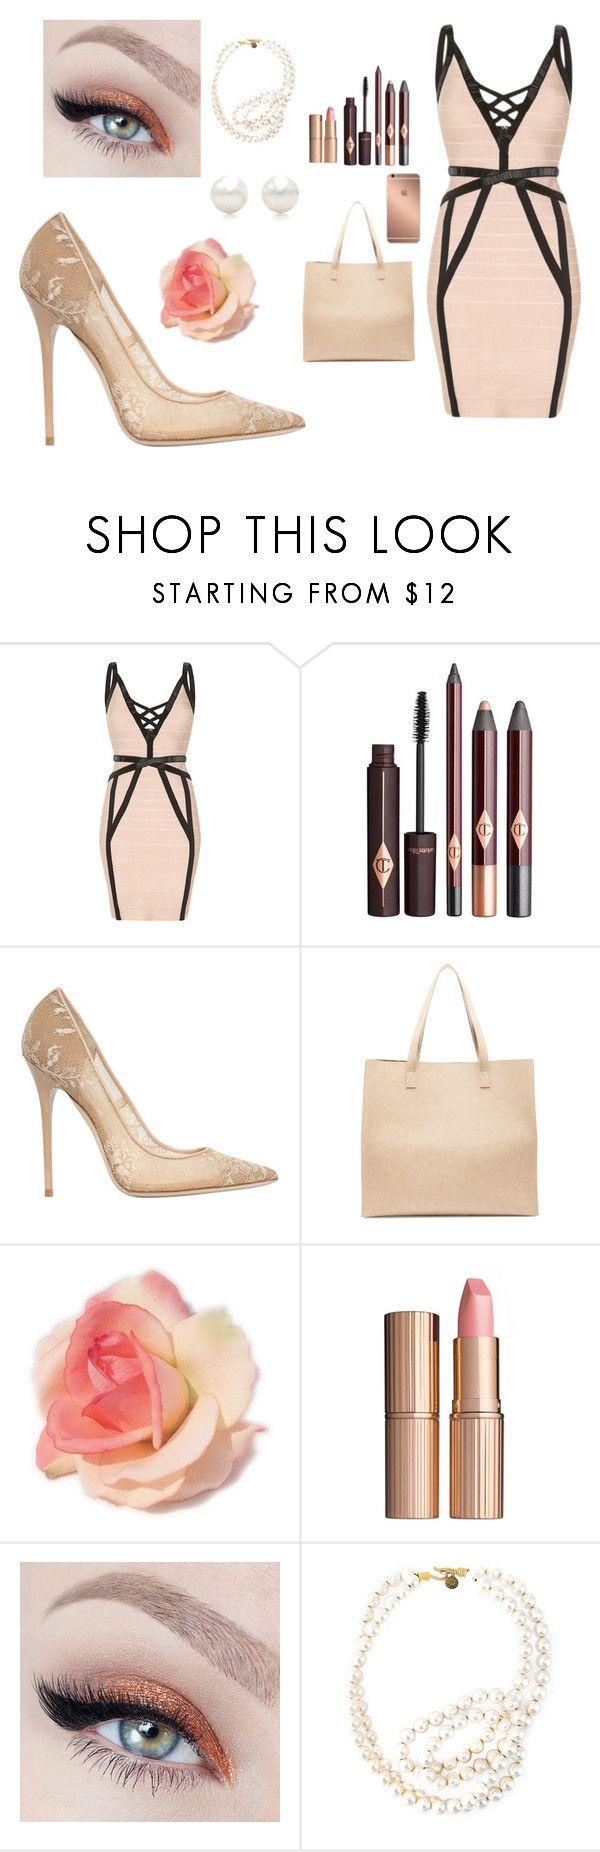 """""""Pearl"""" by natalia-farias ❤ liked on Polyvore featuring Jimmy Choo, Sole Society, Mura, Charlotte Tilbury, STELLA McCARTNEY and Tiffany & Co."""